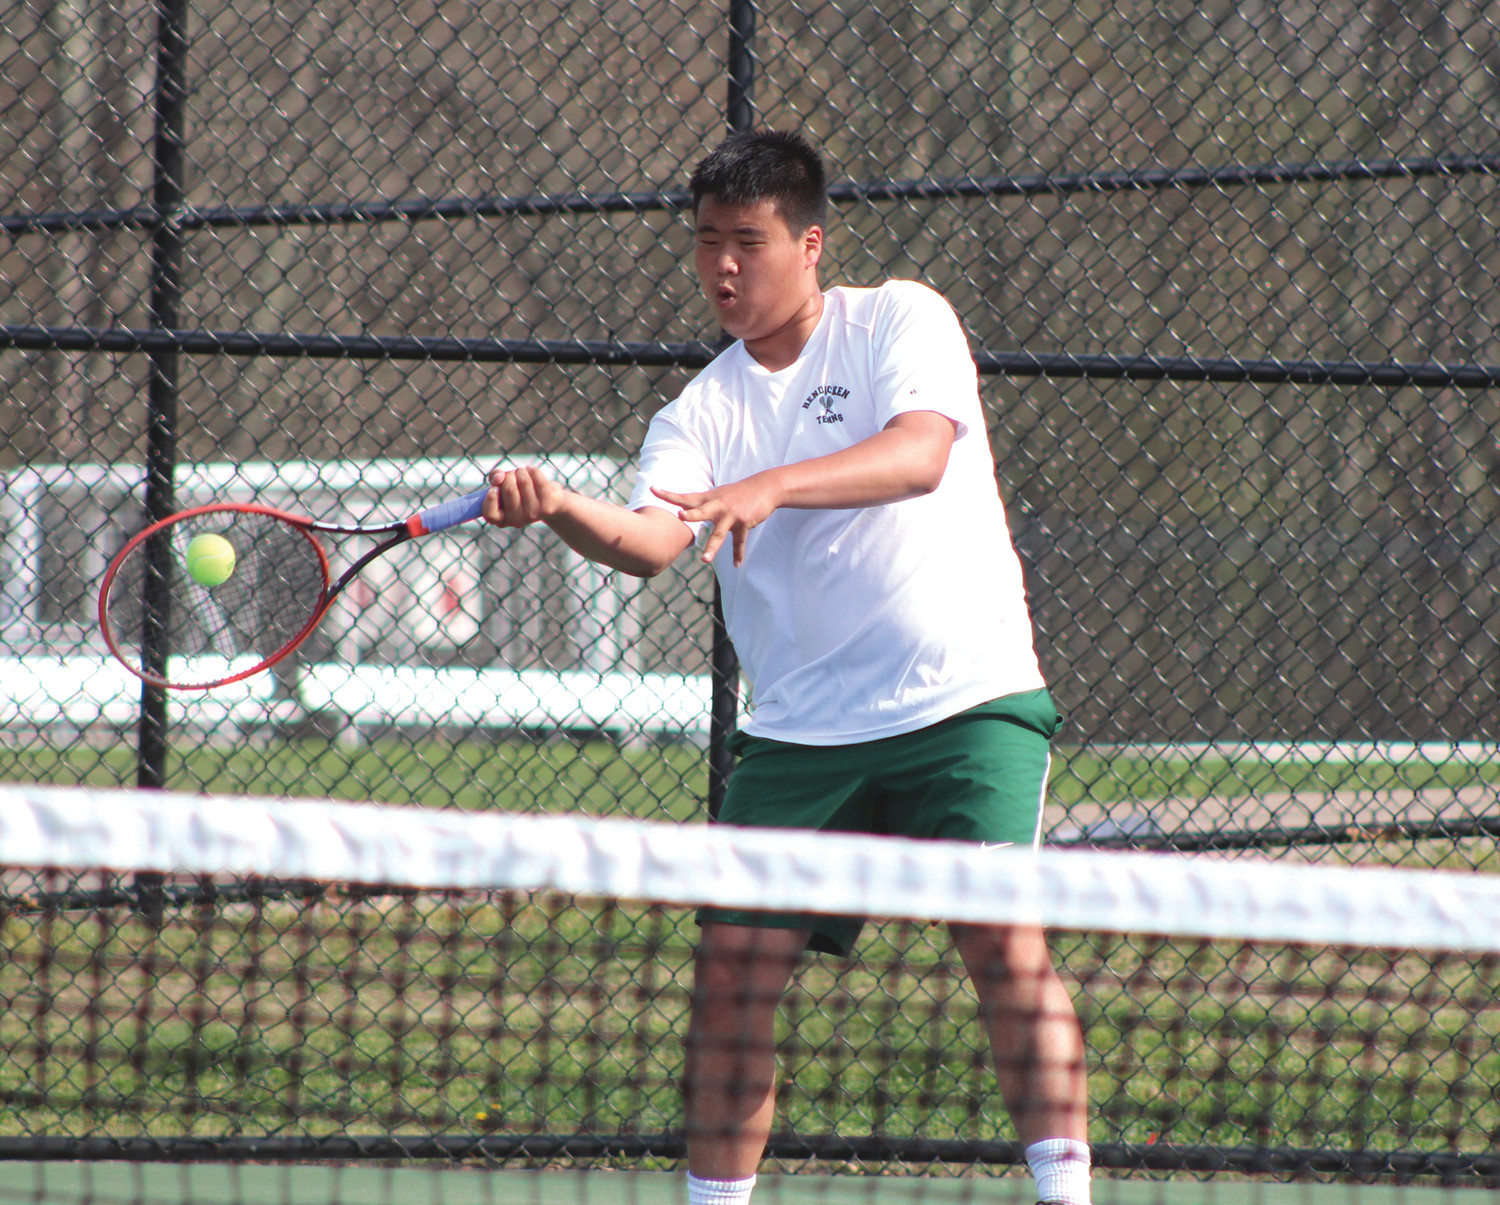 BOUNCE BACK: Bishop Hendricken's Ken Lee returns a shot against North Kingstown.